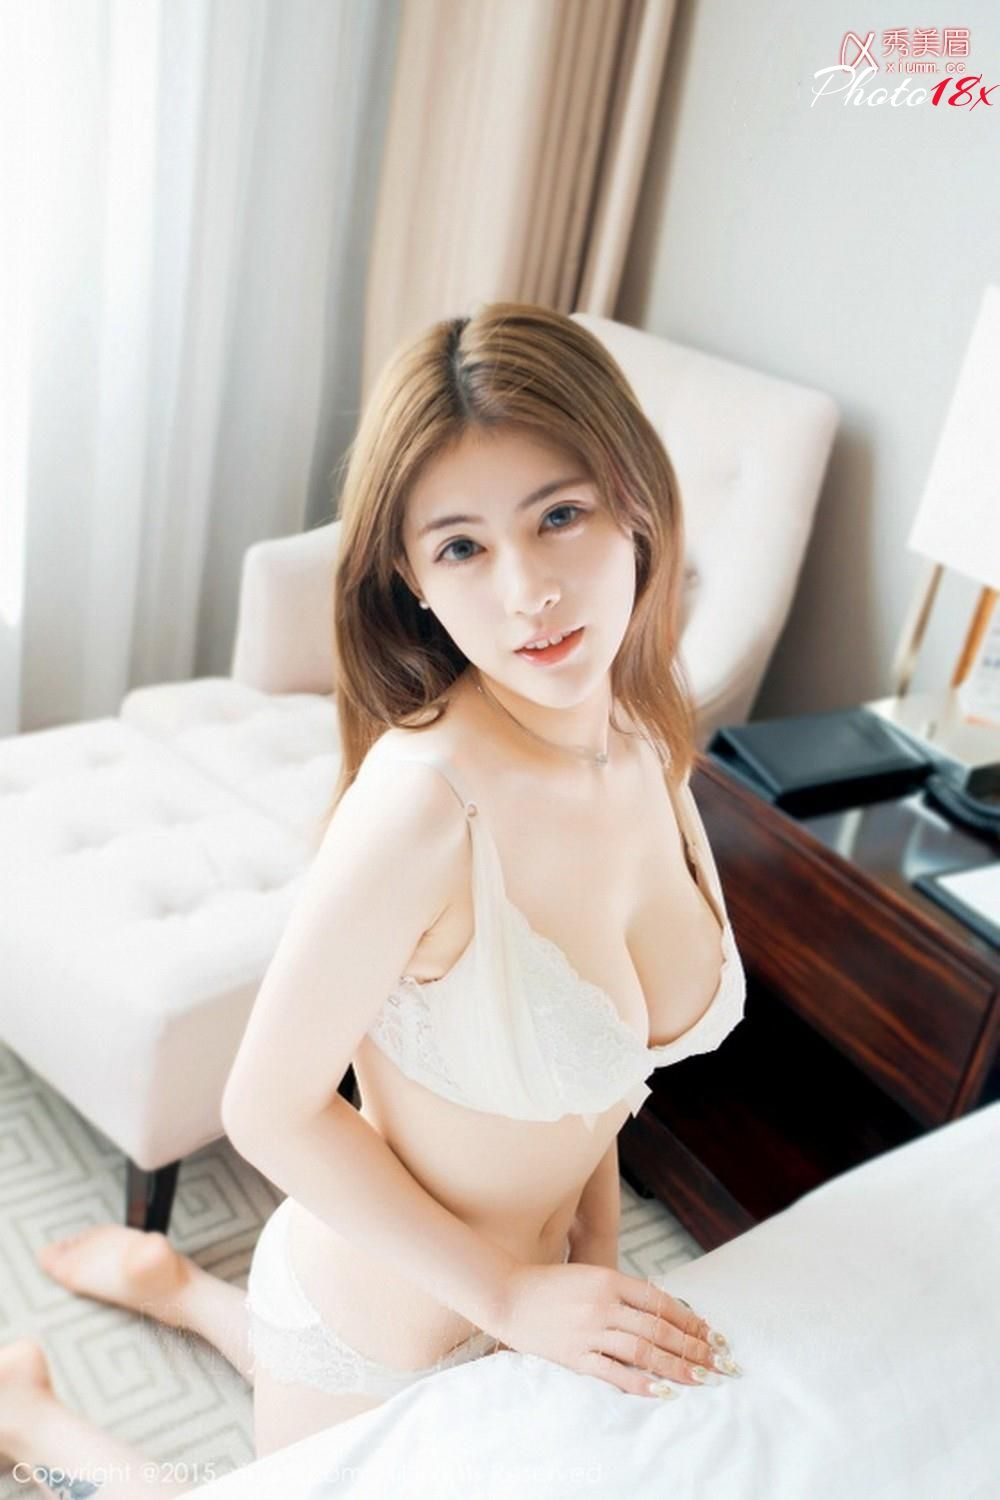 panty Asian no bra white